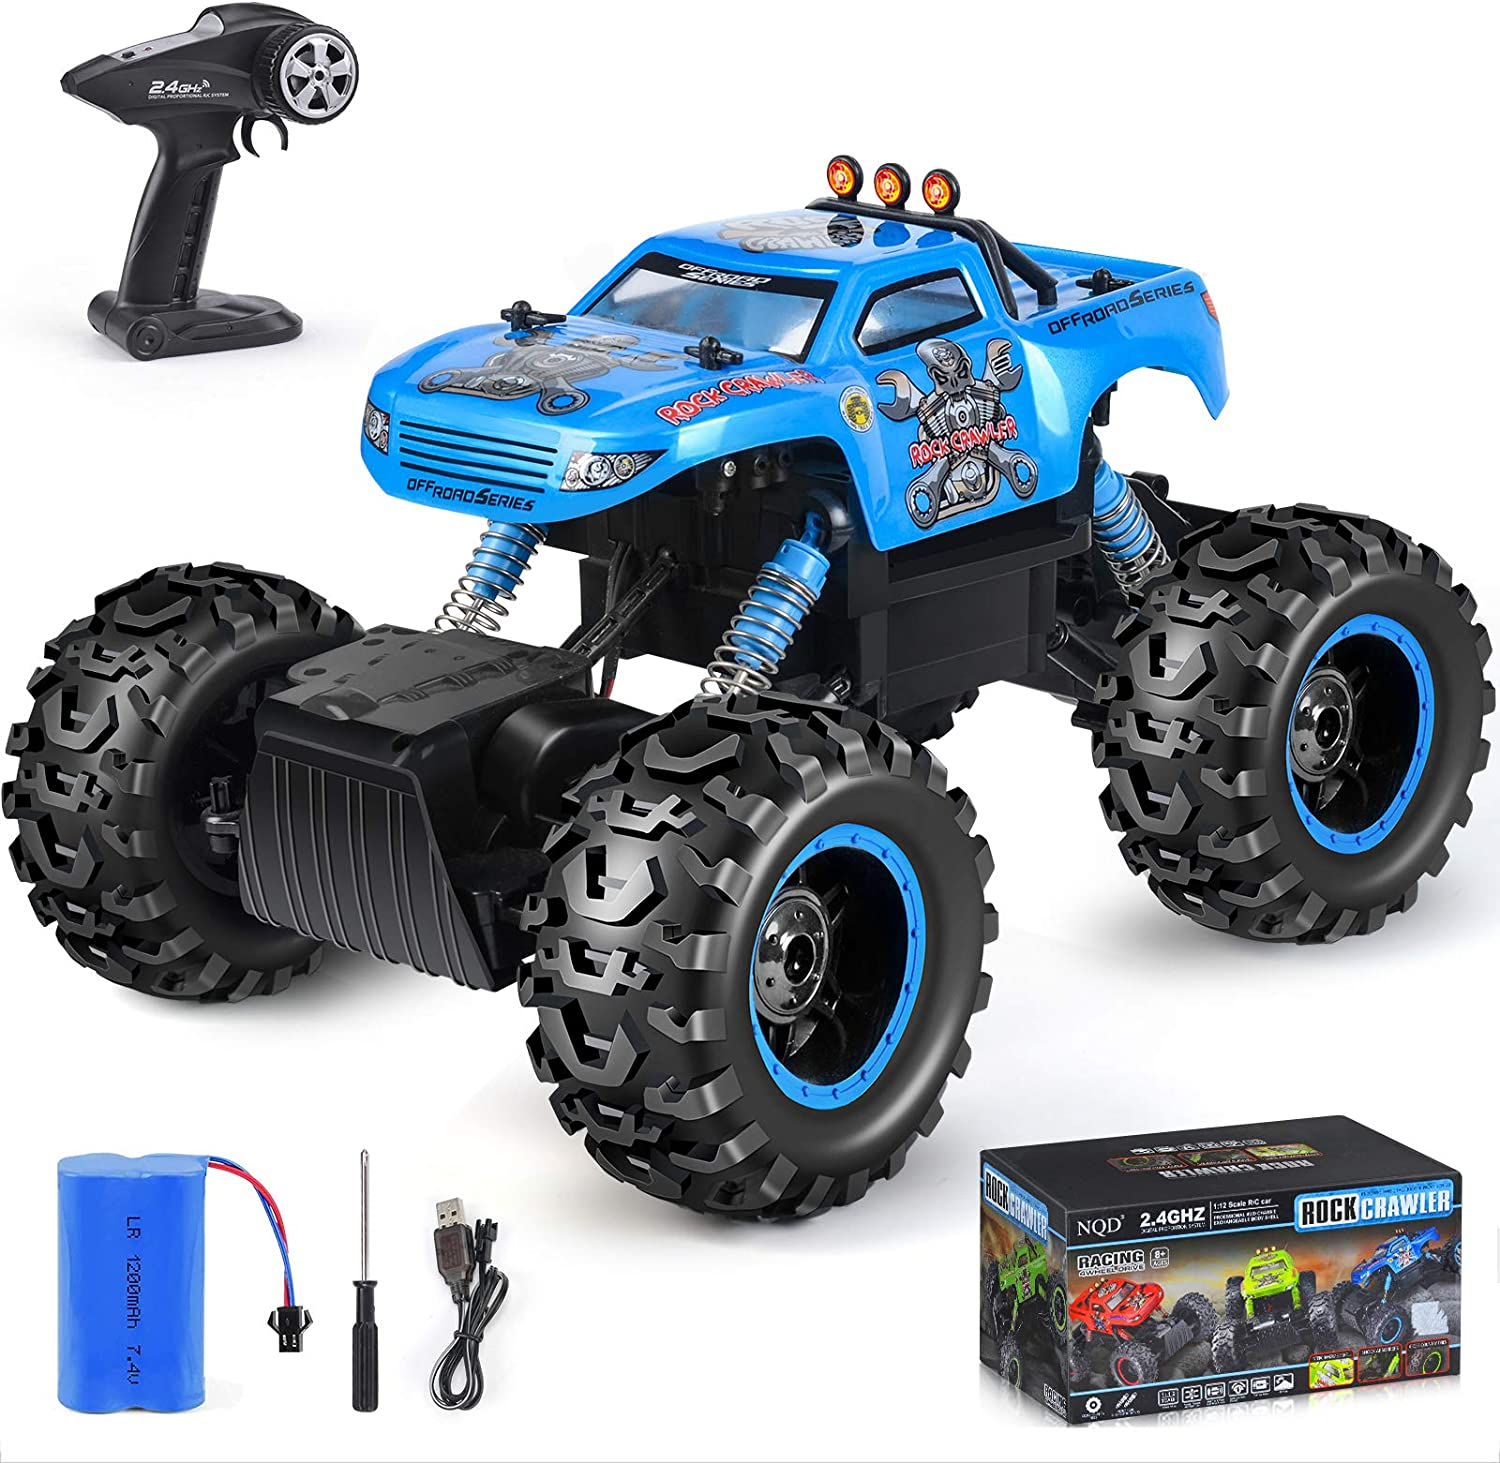 Amazon Com Nqd Rc Car Remote Control Monster Trucks 1 12 Big Scale 4wd Off Road Rock Crawlers 2 0ghz Radio Remote Control Car High Speed Racing All Terrain Climbing Car Gift For Boys Toys